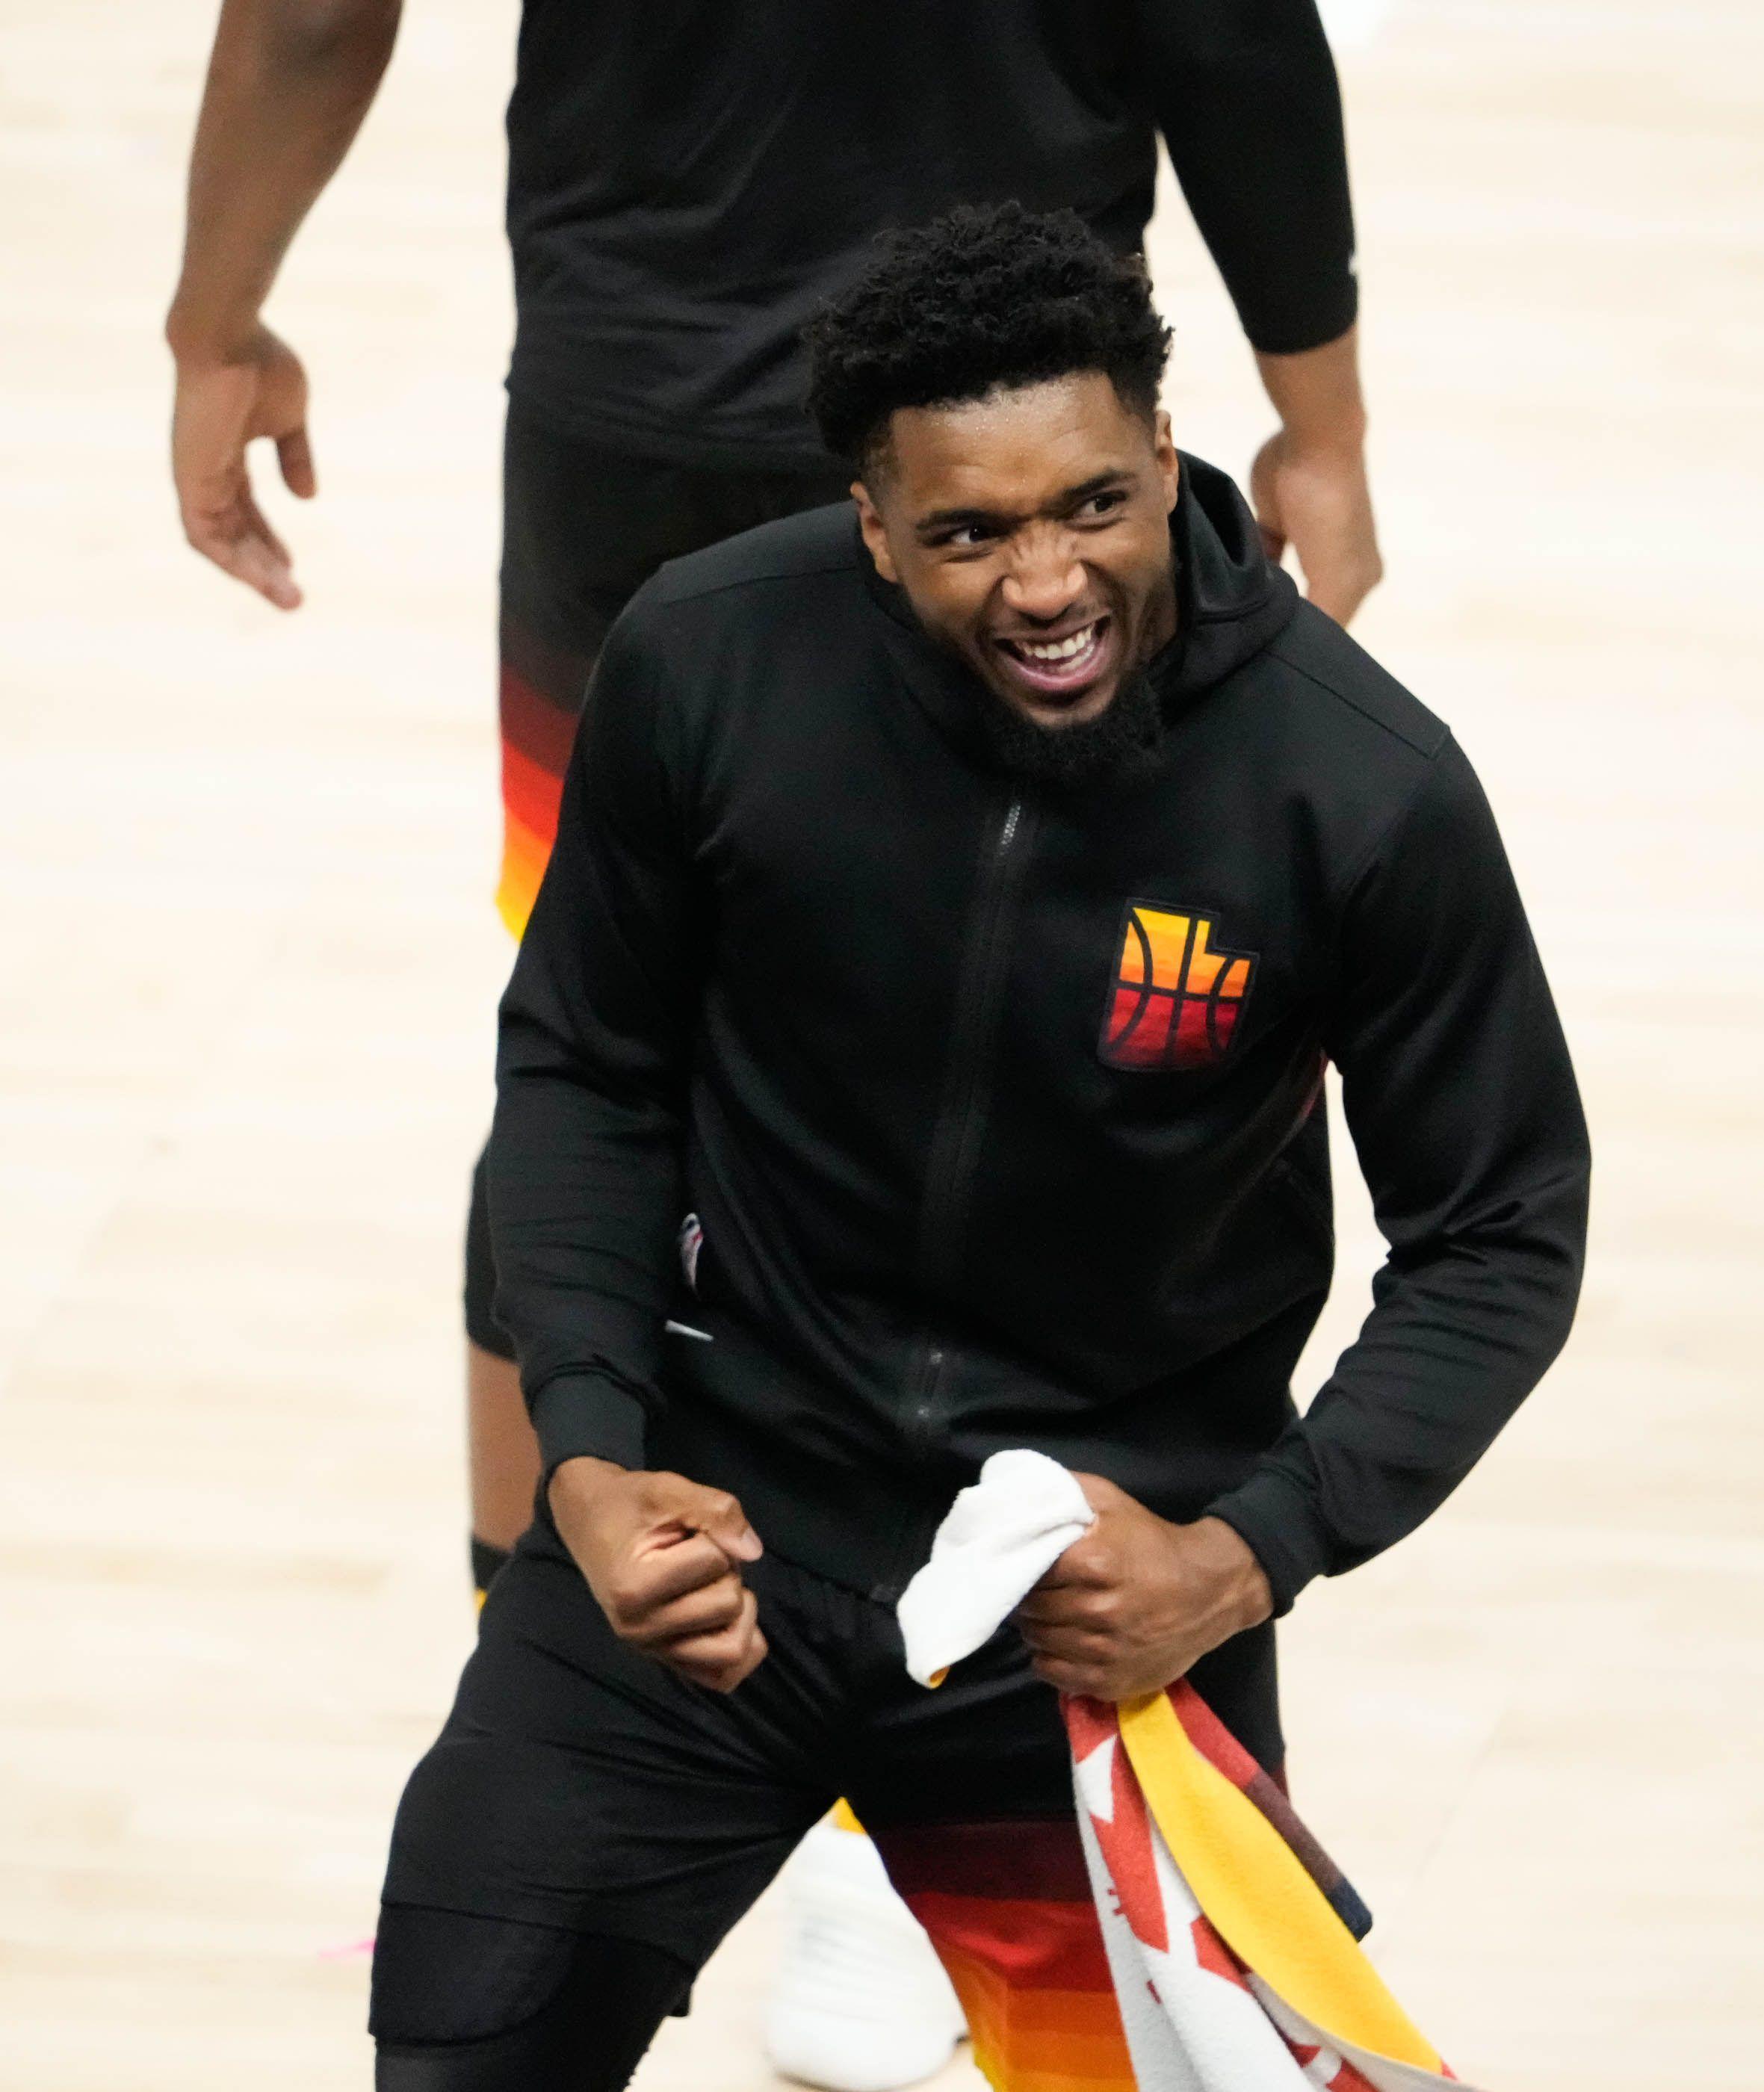 (Francisco Kjolseth | The Salt Lake Tribune) Utah Jazz guard Donovan Mitchell (45) celebrates their 126-110 win over Memphis to advance in the playoffs following Game 5 of their NBA basketball first-round playoff series Wednesday, June 2, 2021, in Salt Lake City, UT.